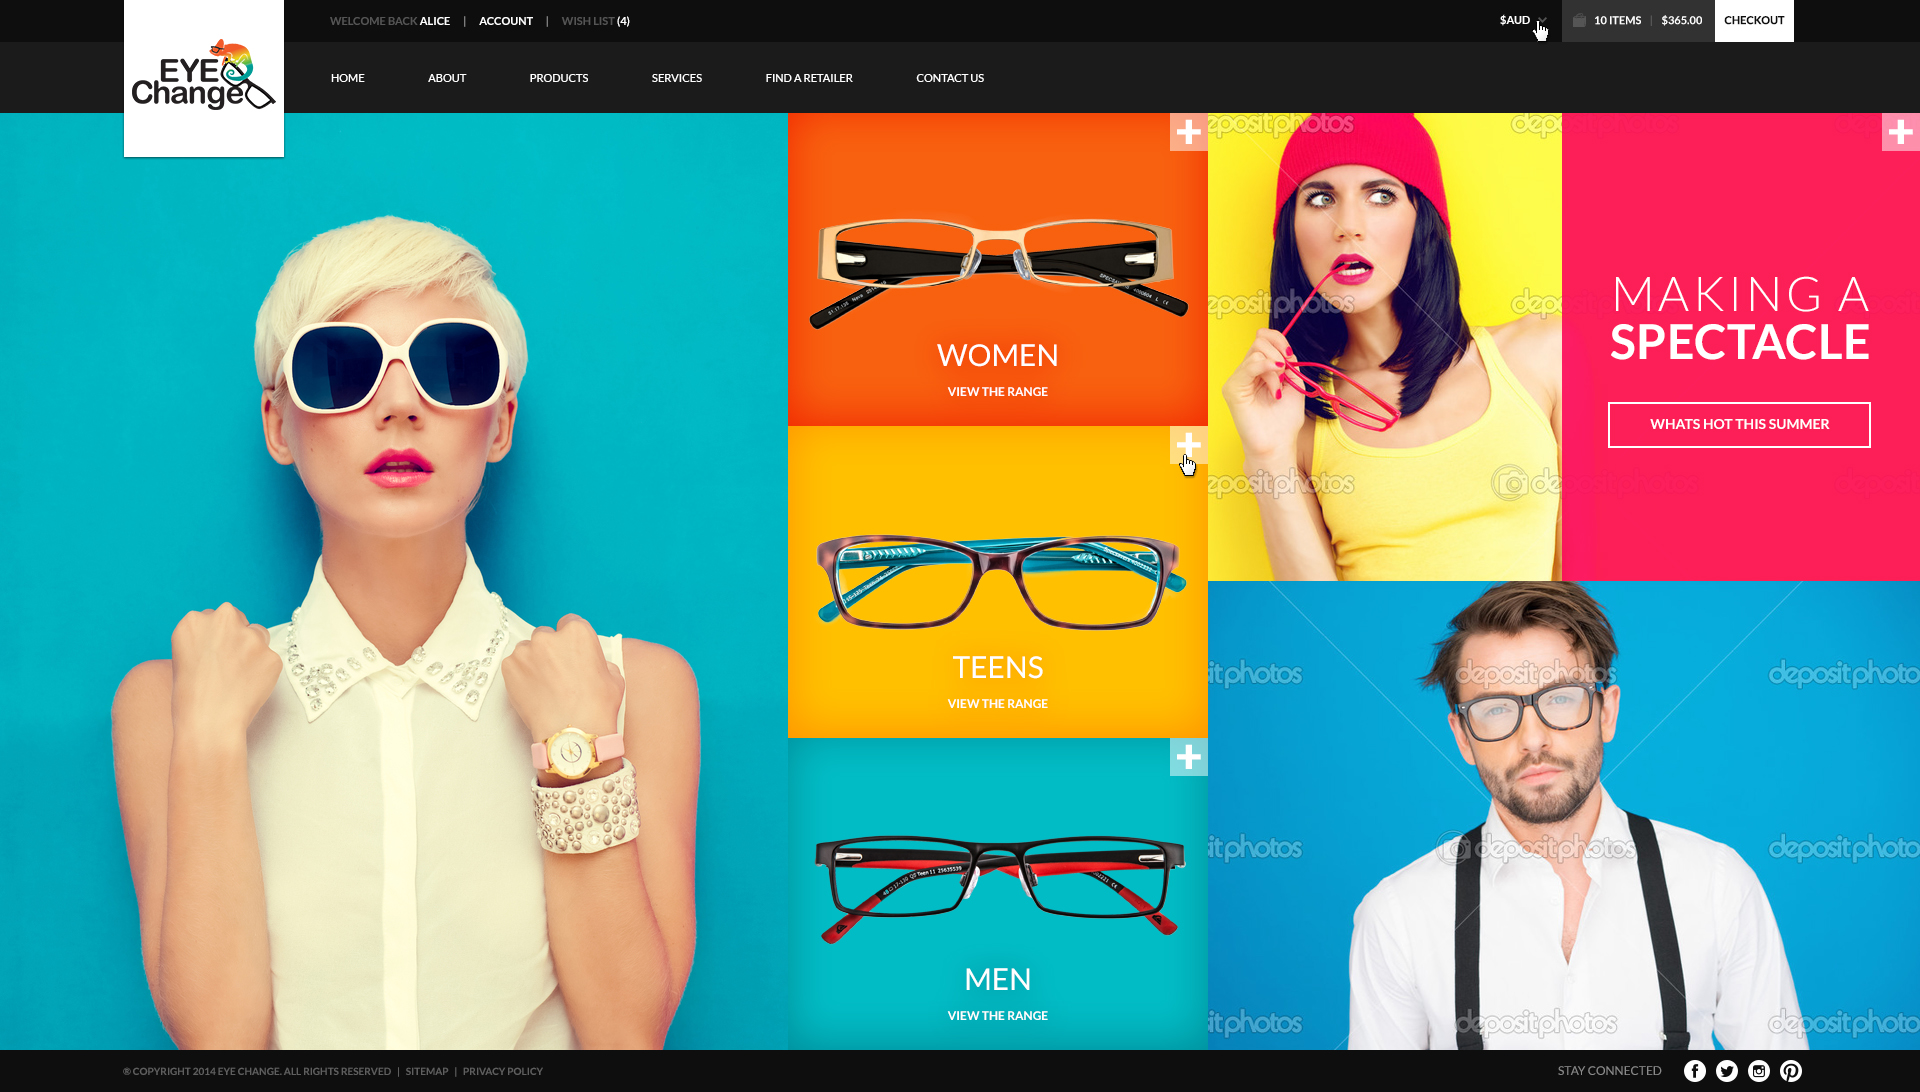 Website design concept for an optical eyewear specialist